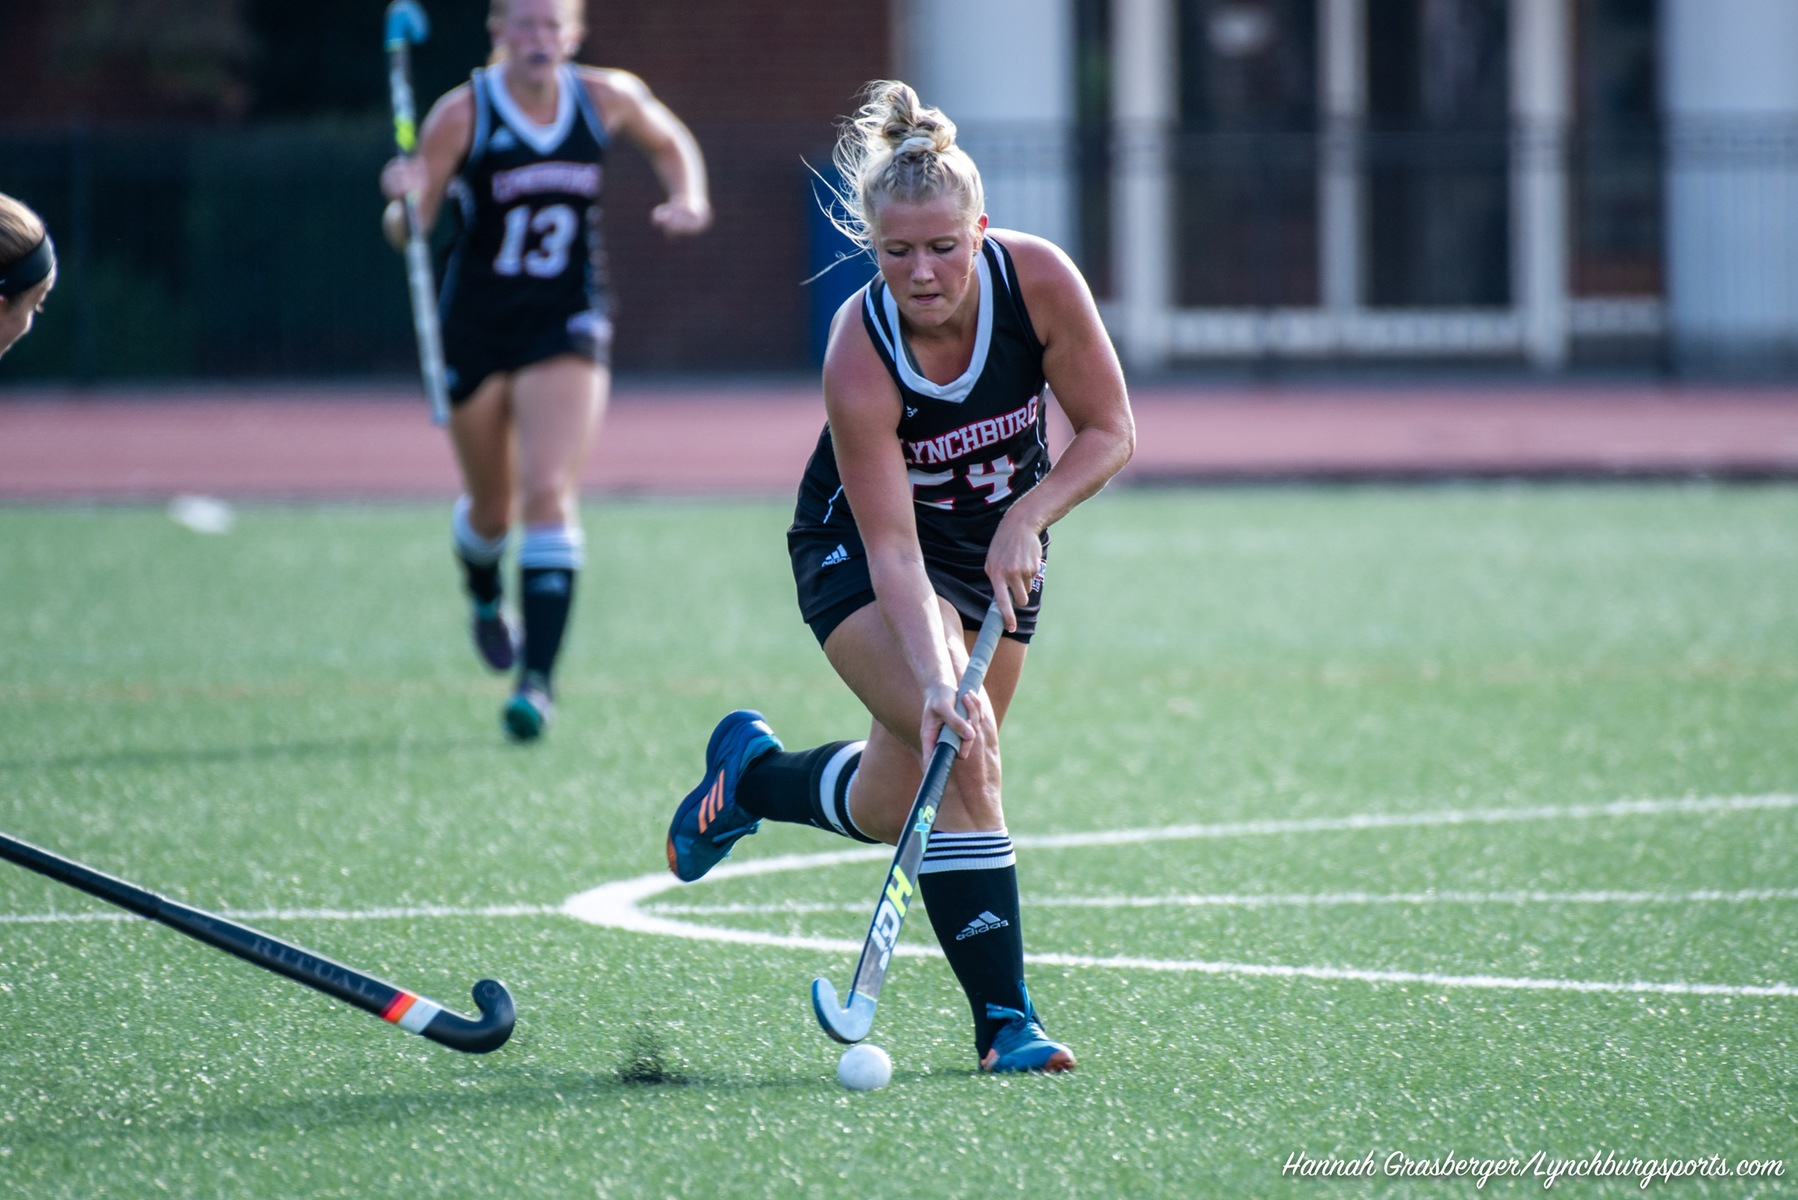 Kayla Copeman hitting a field hockey ball in a game.